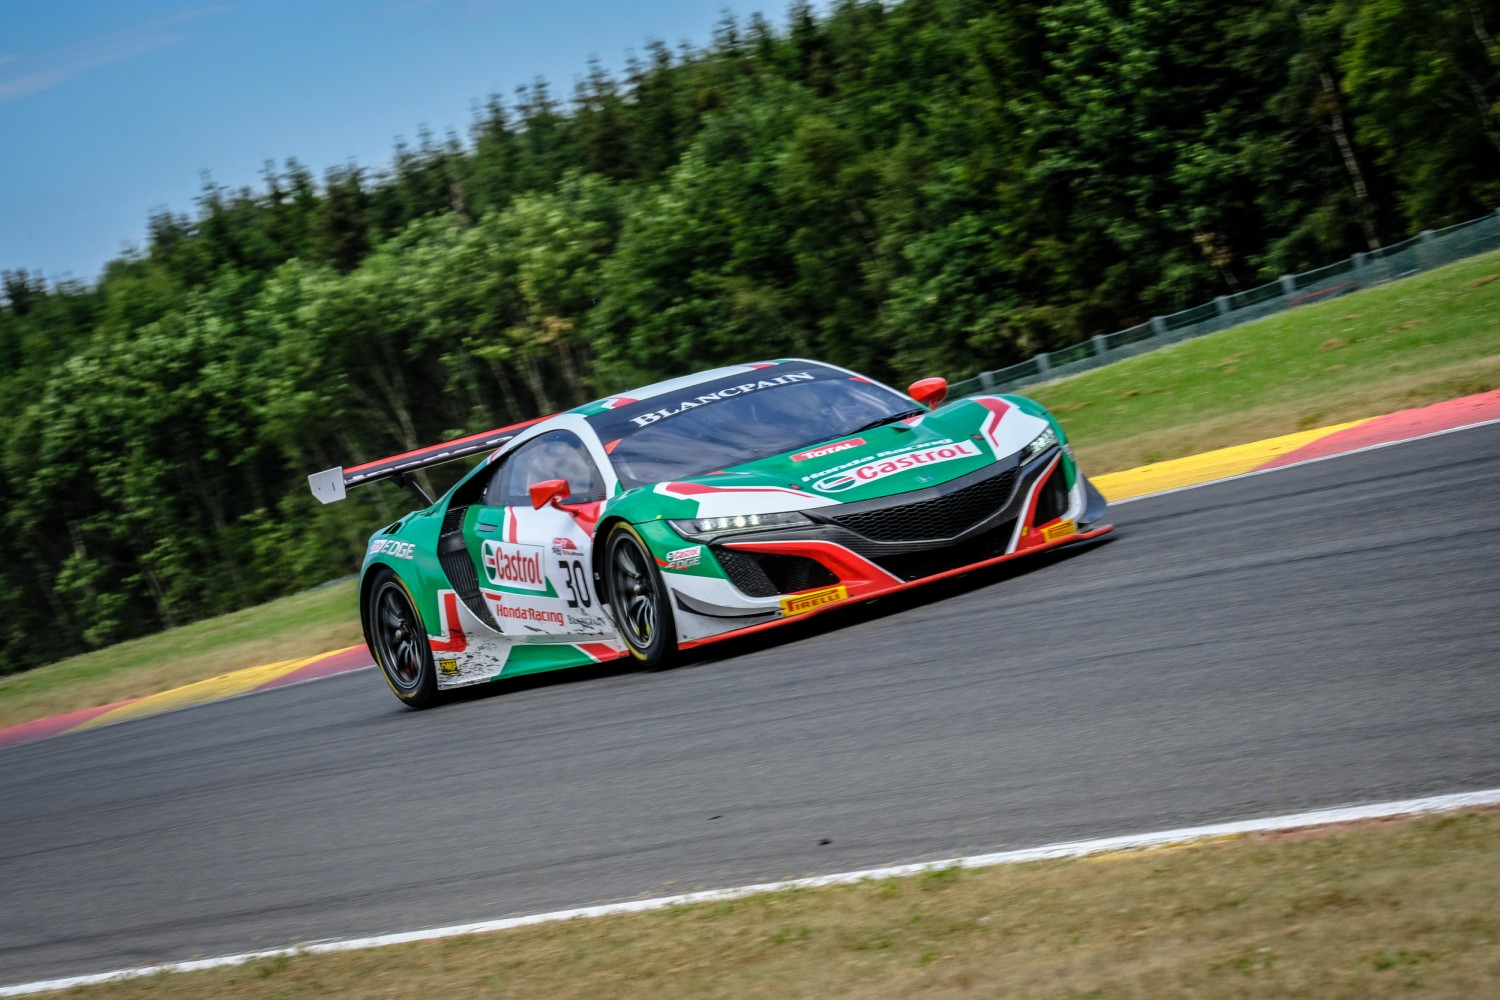 Riccardo Patrese and Loic Depailler to complete the Honda Castrol Racing line-up for the Total 24 Hours of Spa